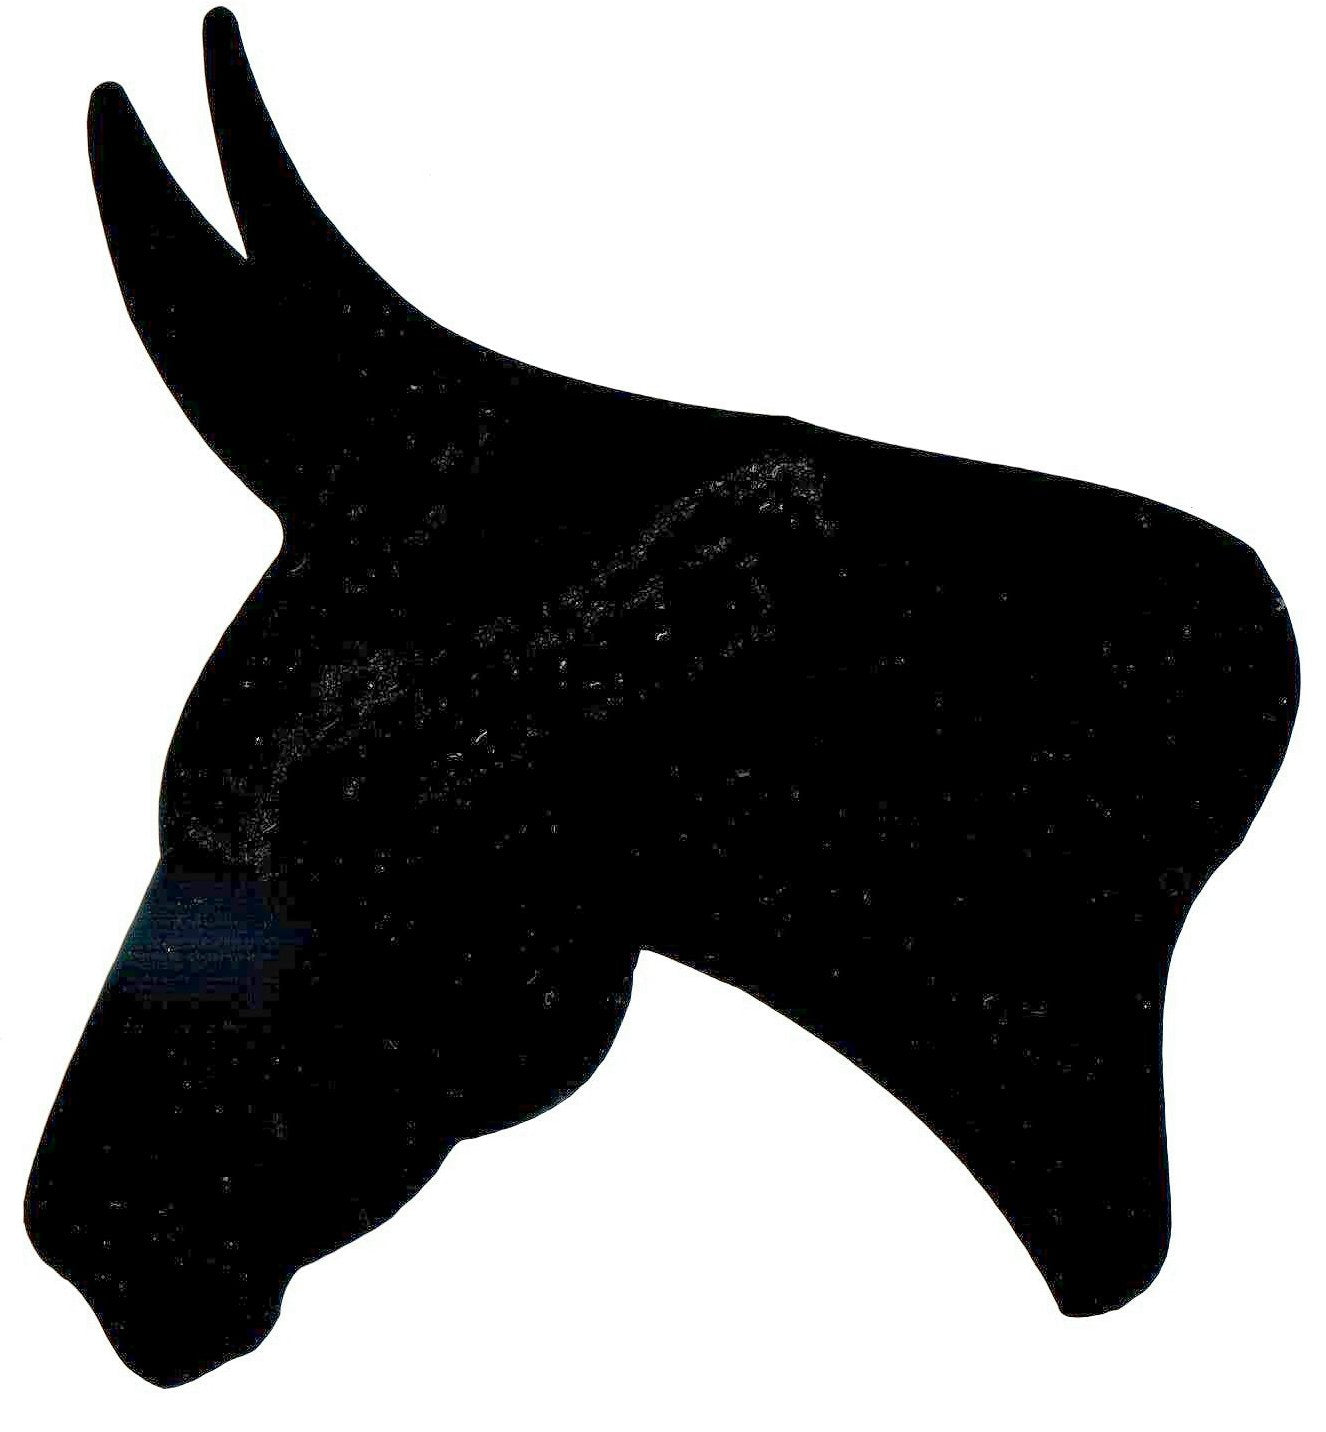 Decal - Sm Mule Head